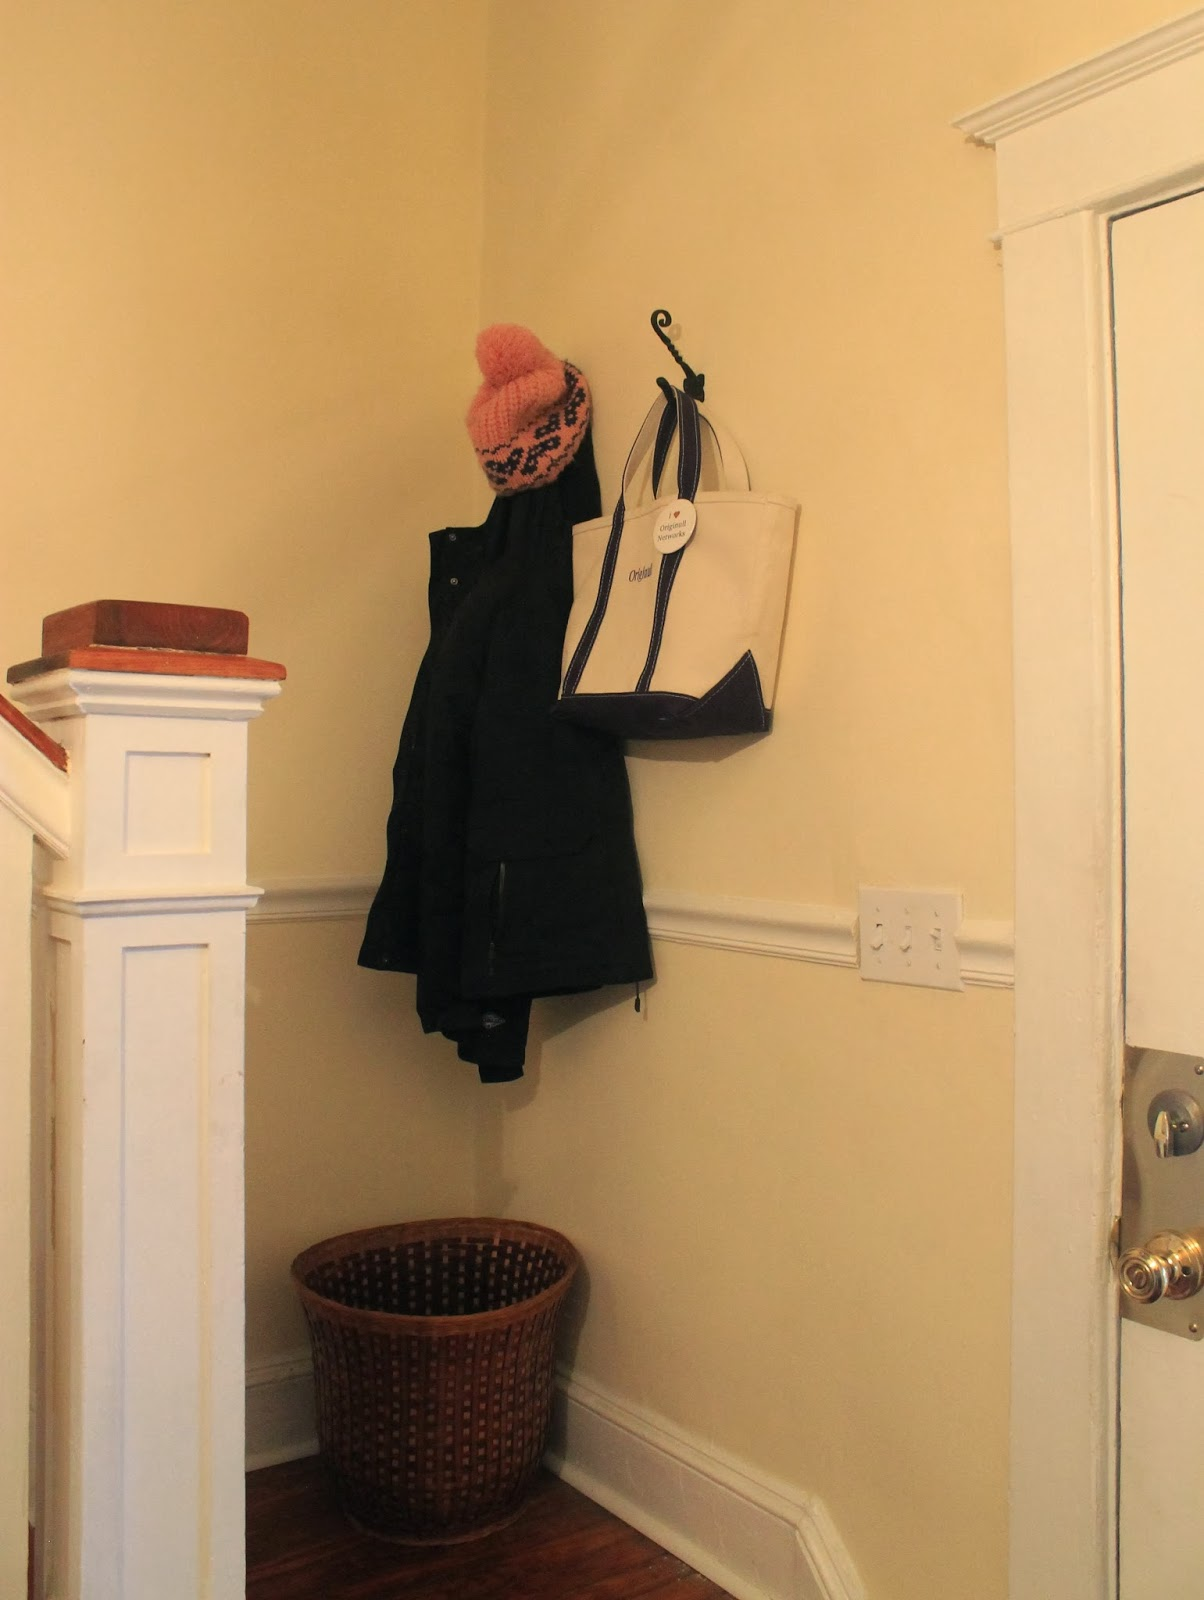 Around The House: Dealing With No Coat Closet